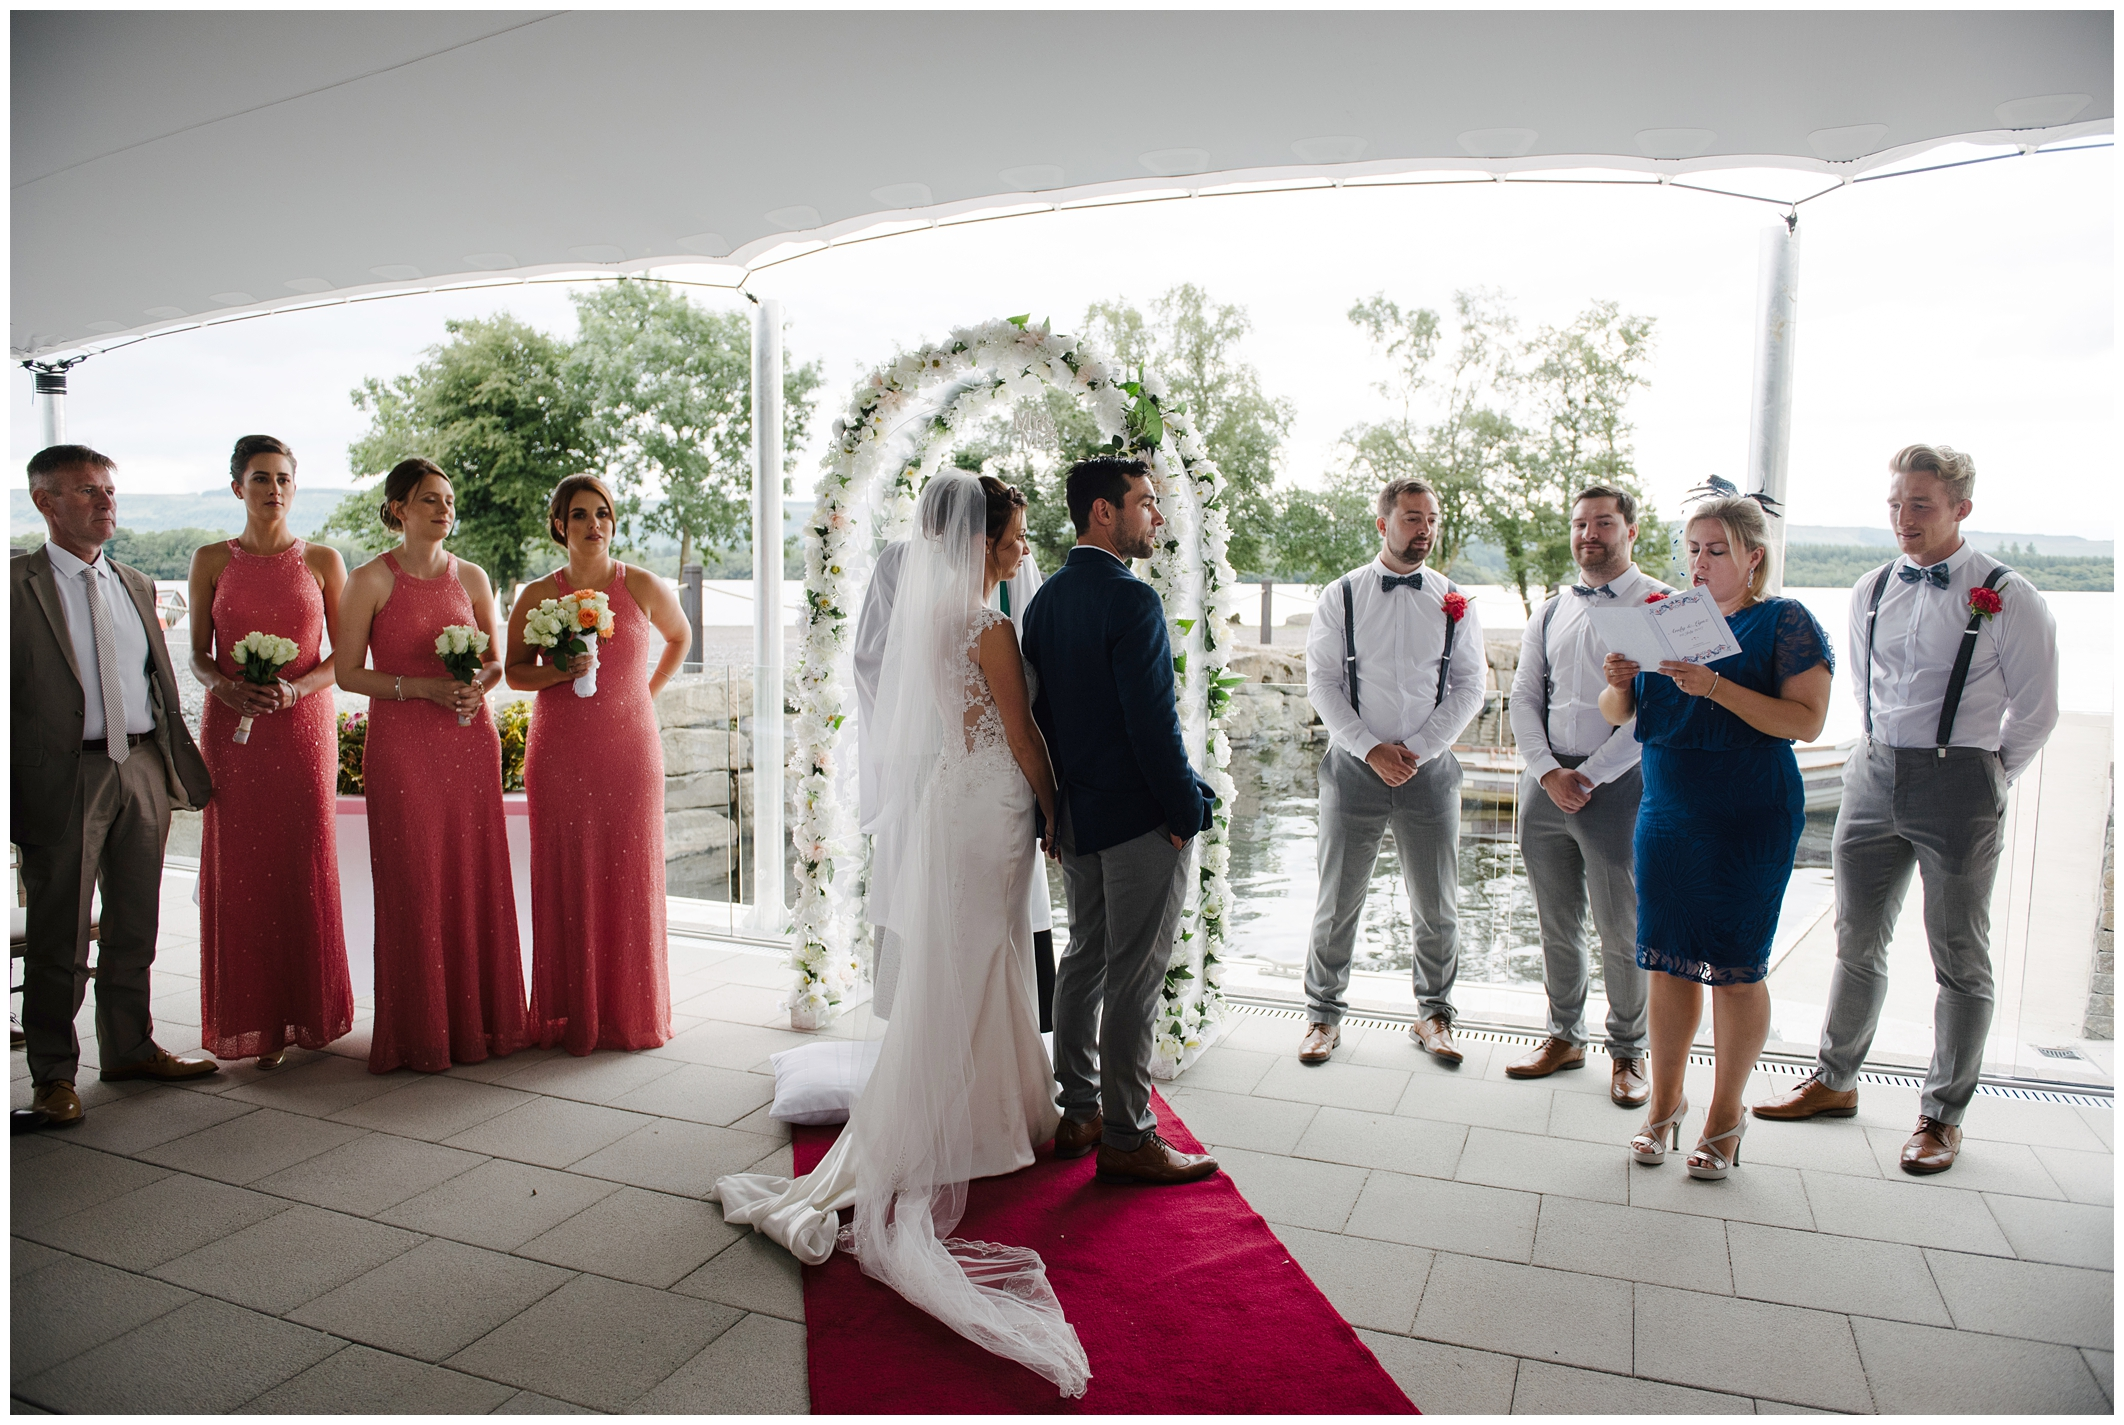 Lynsey_Andy_Rossharbour_Fermanagh_wedding_jude_browne_photography_0070.jpg